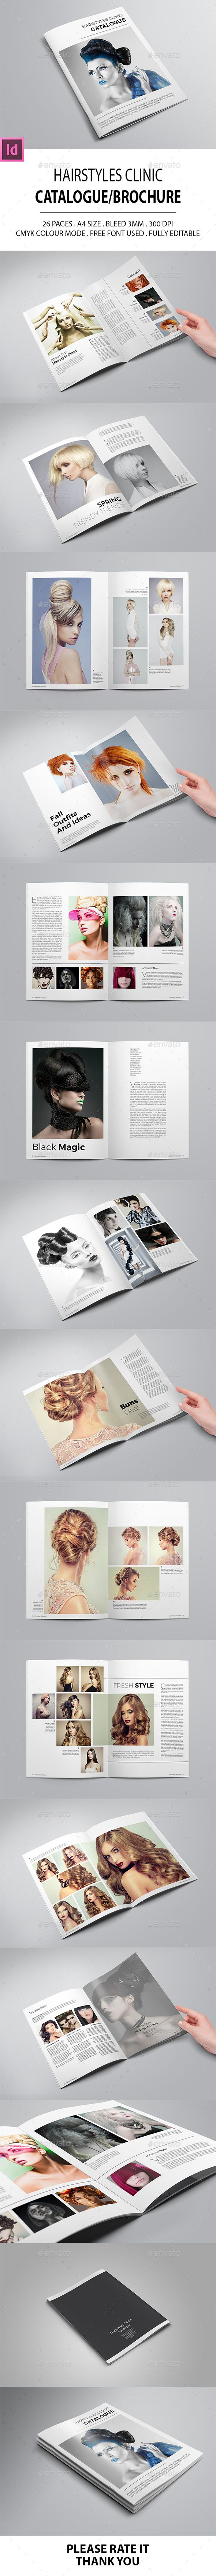 Hairstyles Clinic Catalogue/Brochure